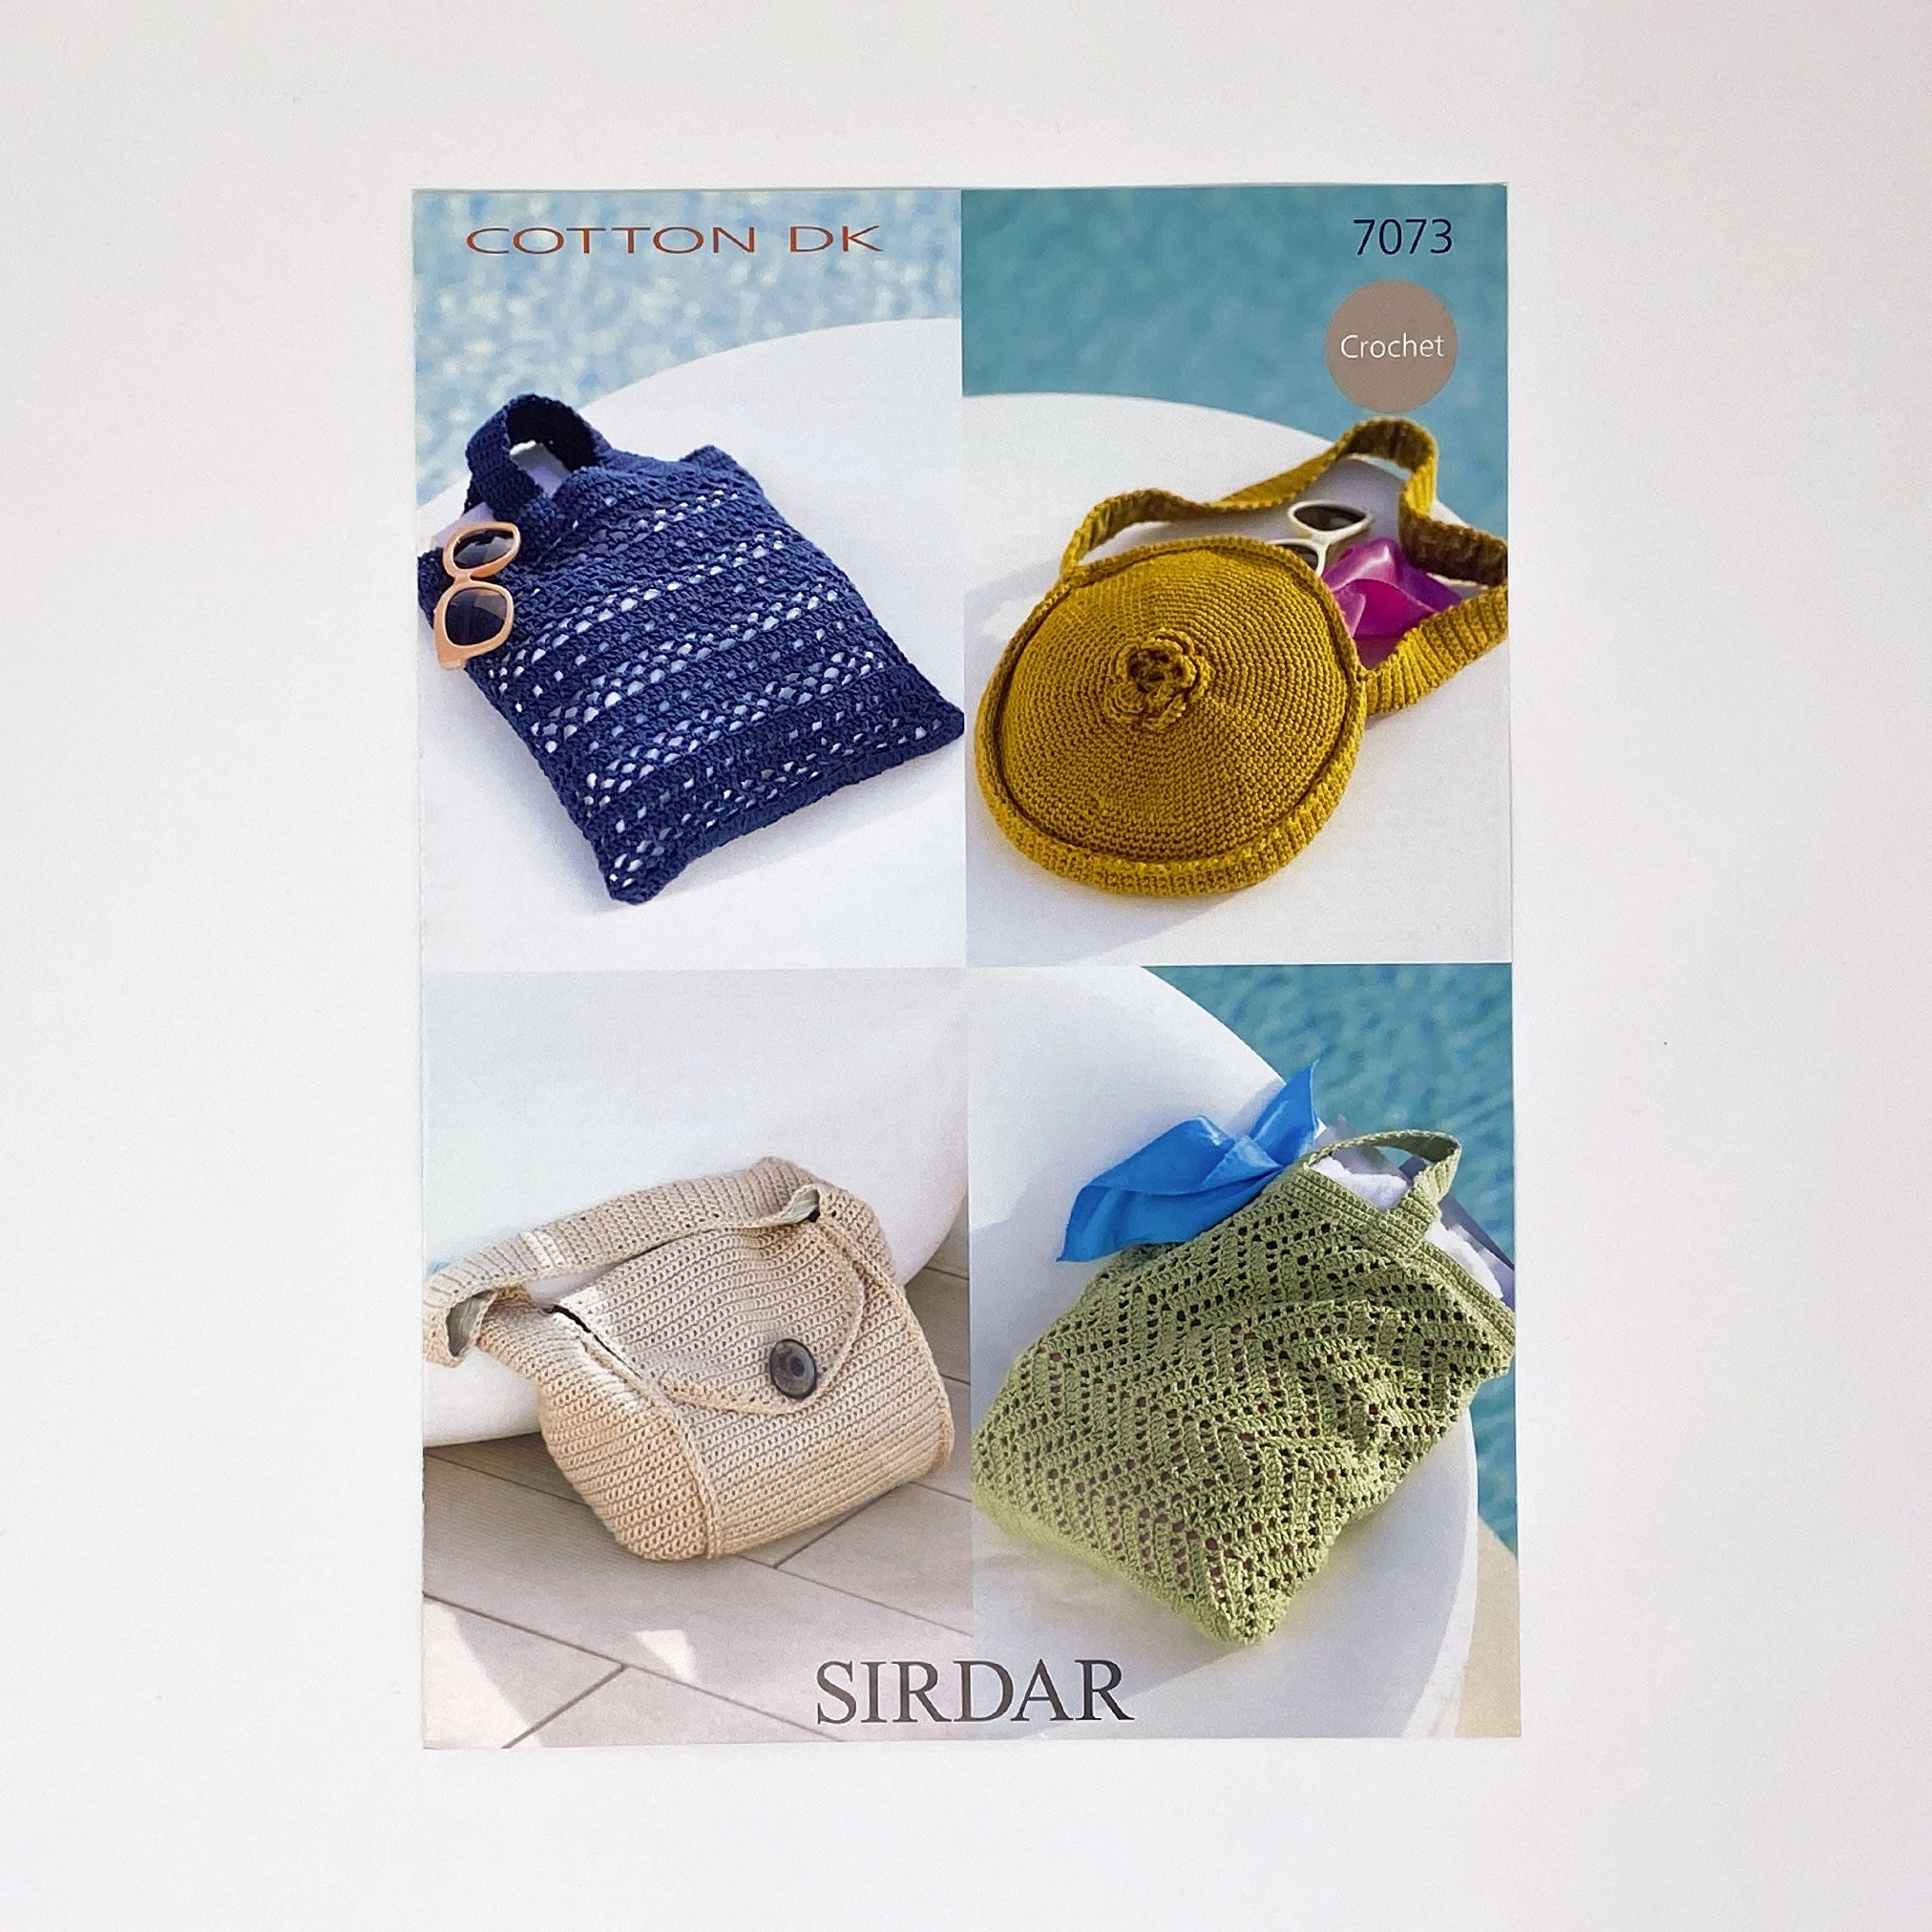 SIRDAR Crochet Cotton DK (7073) bag patterns